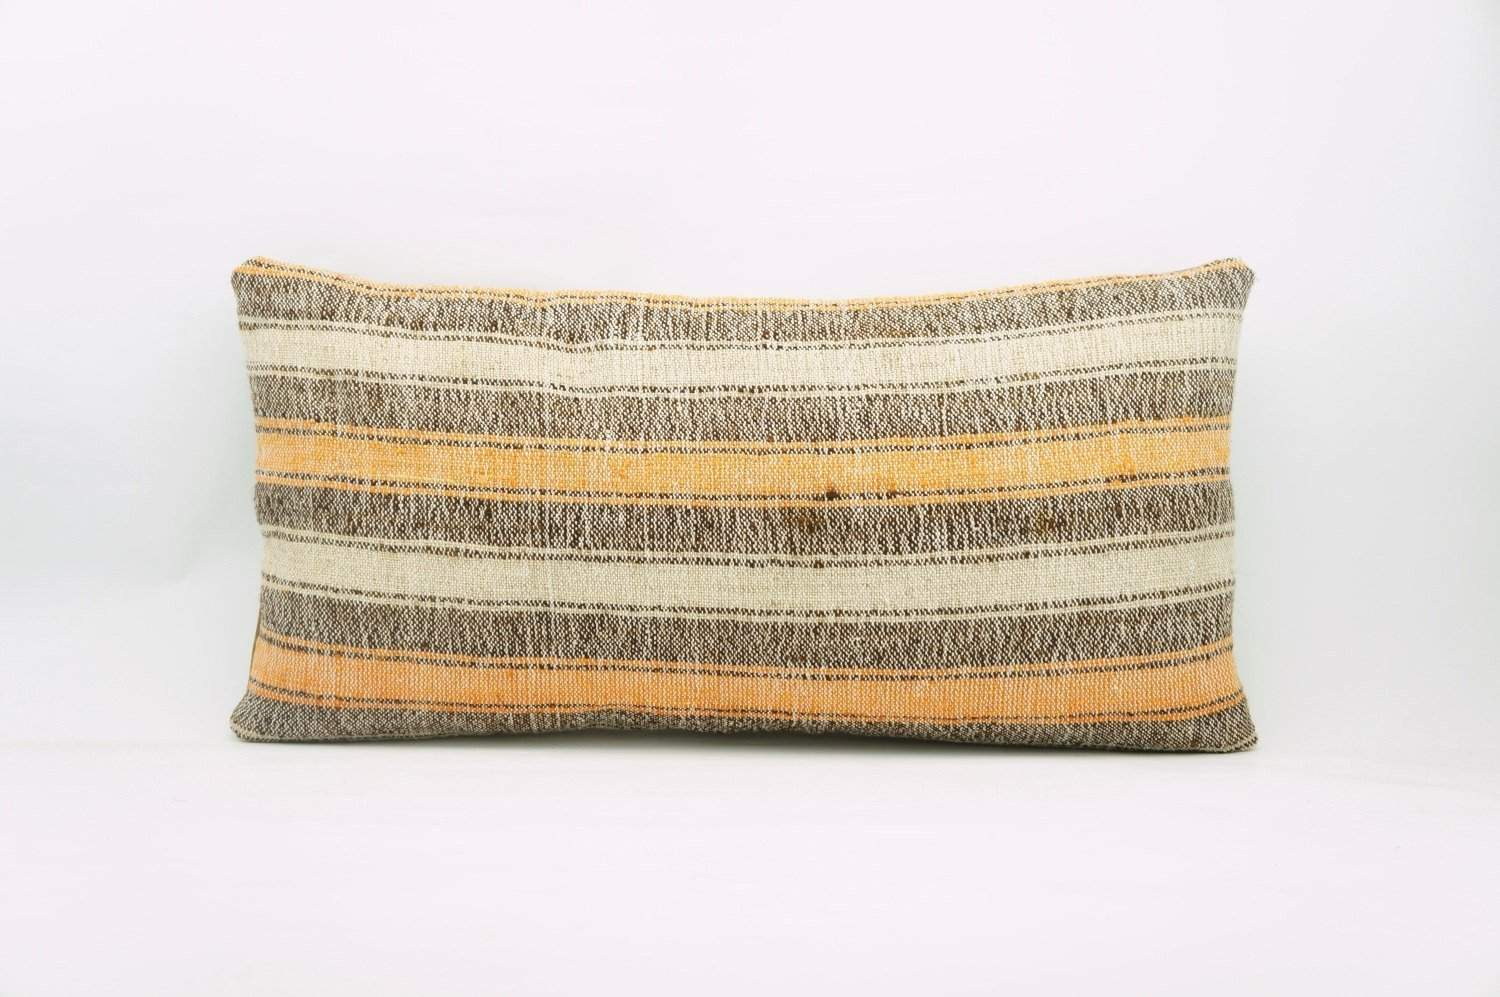 12x24 Vintage Hand Woven Kilim Pillow Lumbar Bohemian pillow case, Modern home decor orange white brown striped 963